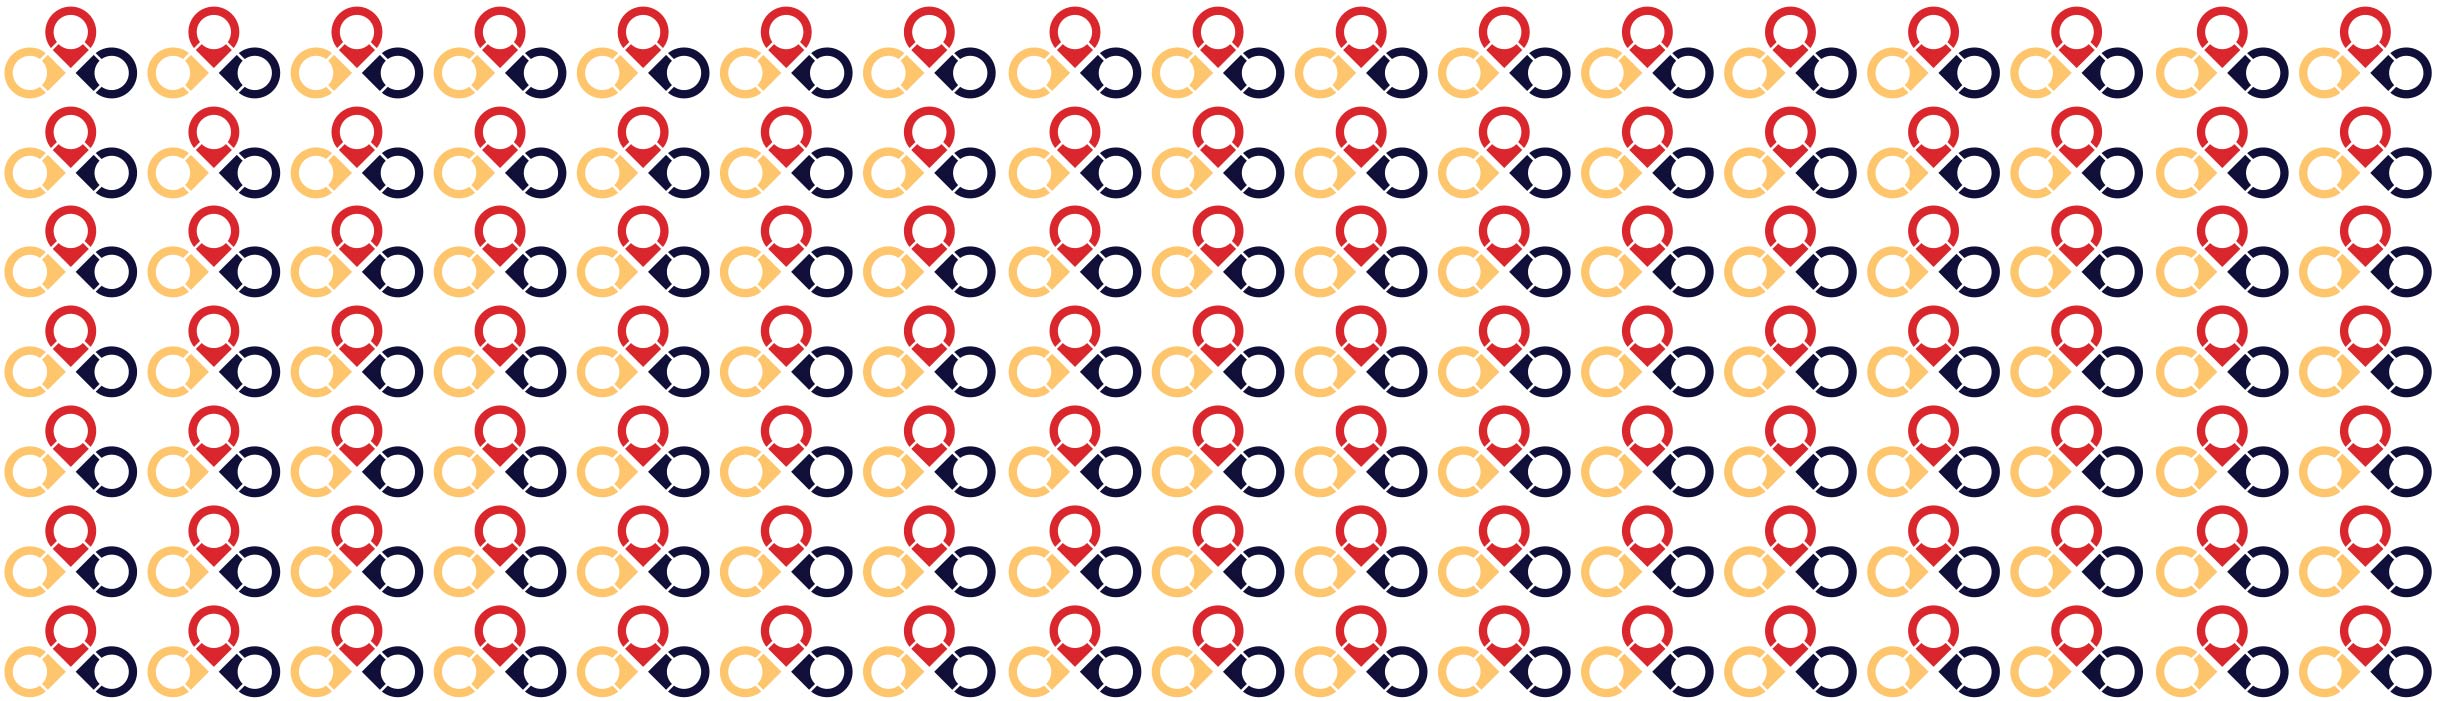 graphic_pattern_3_f